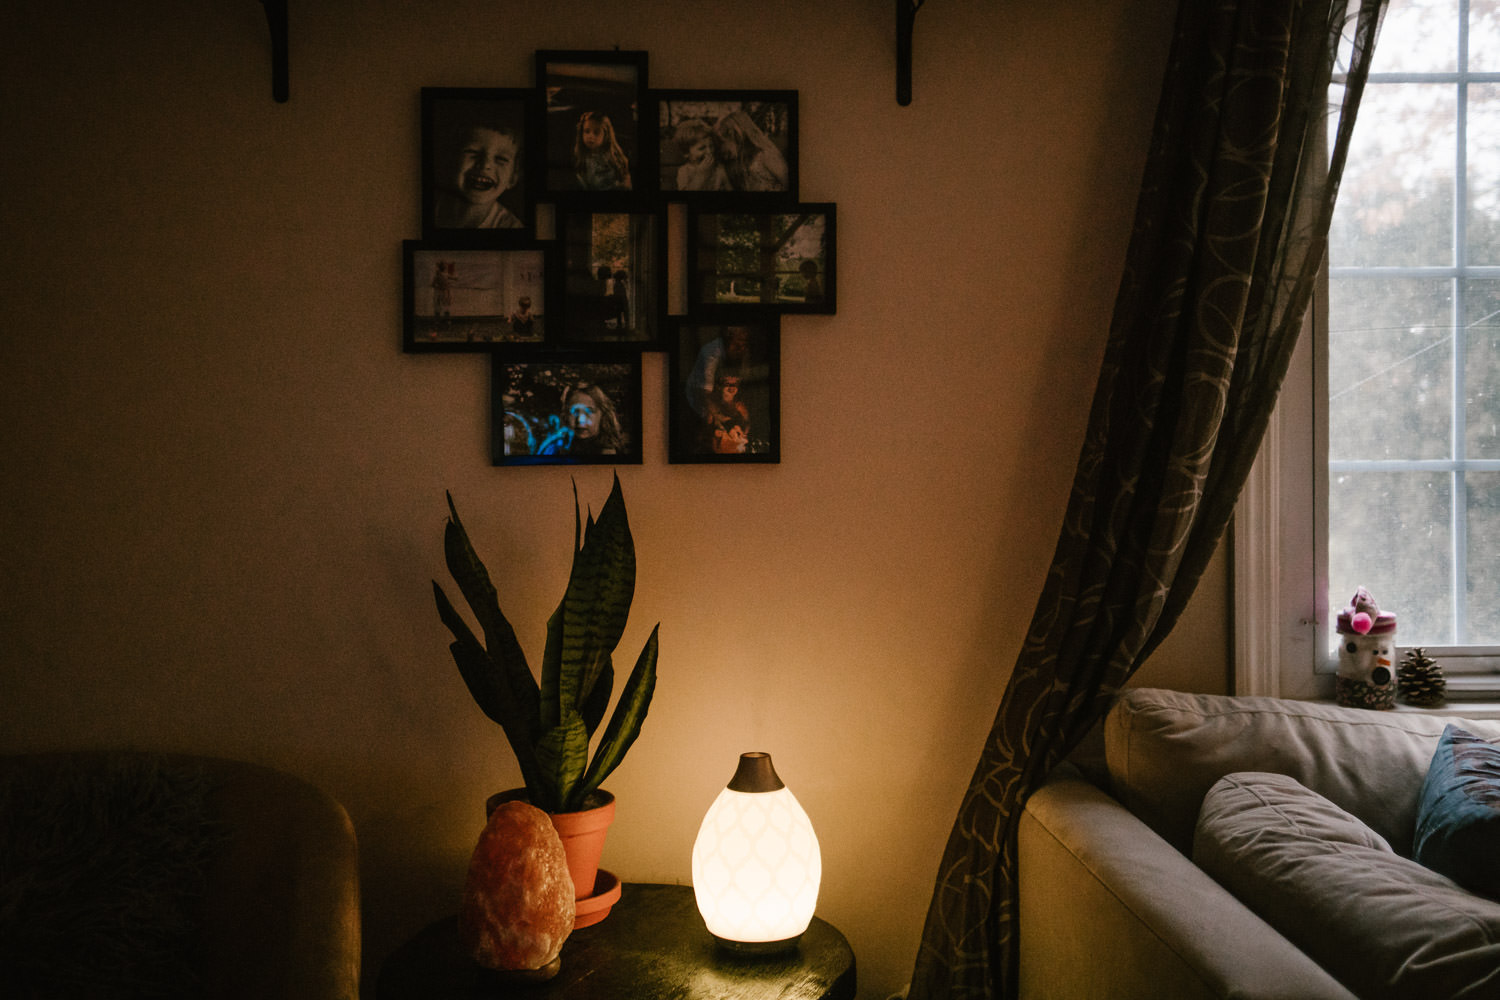 A diffuser and plant sit on a living room side table.